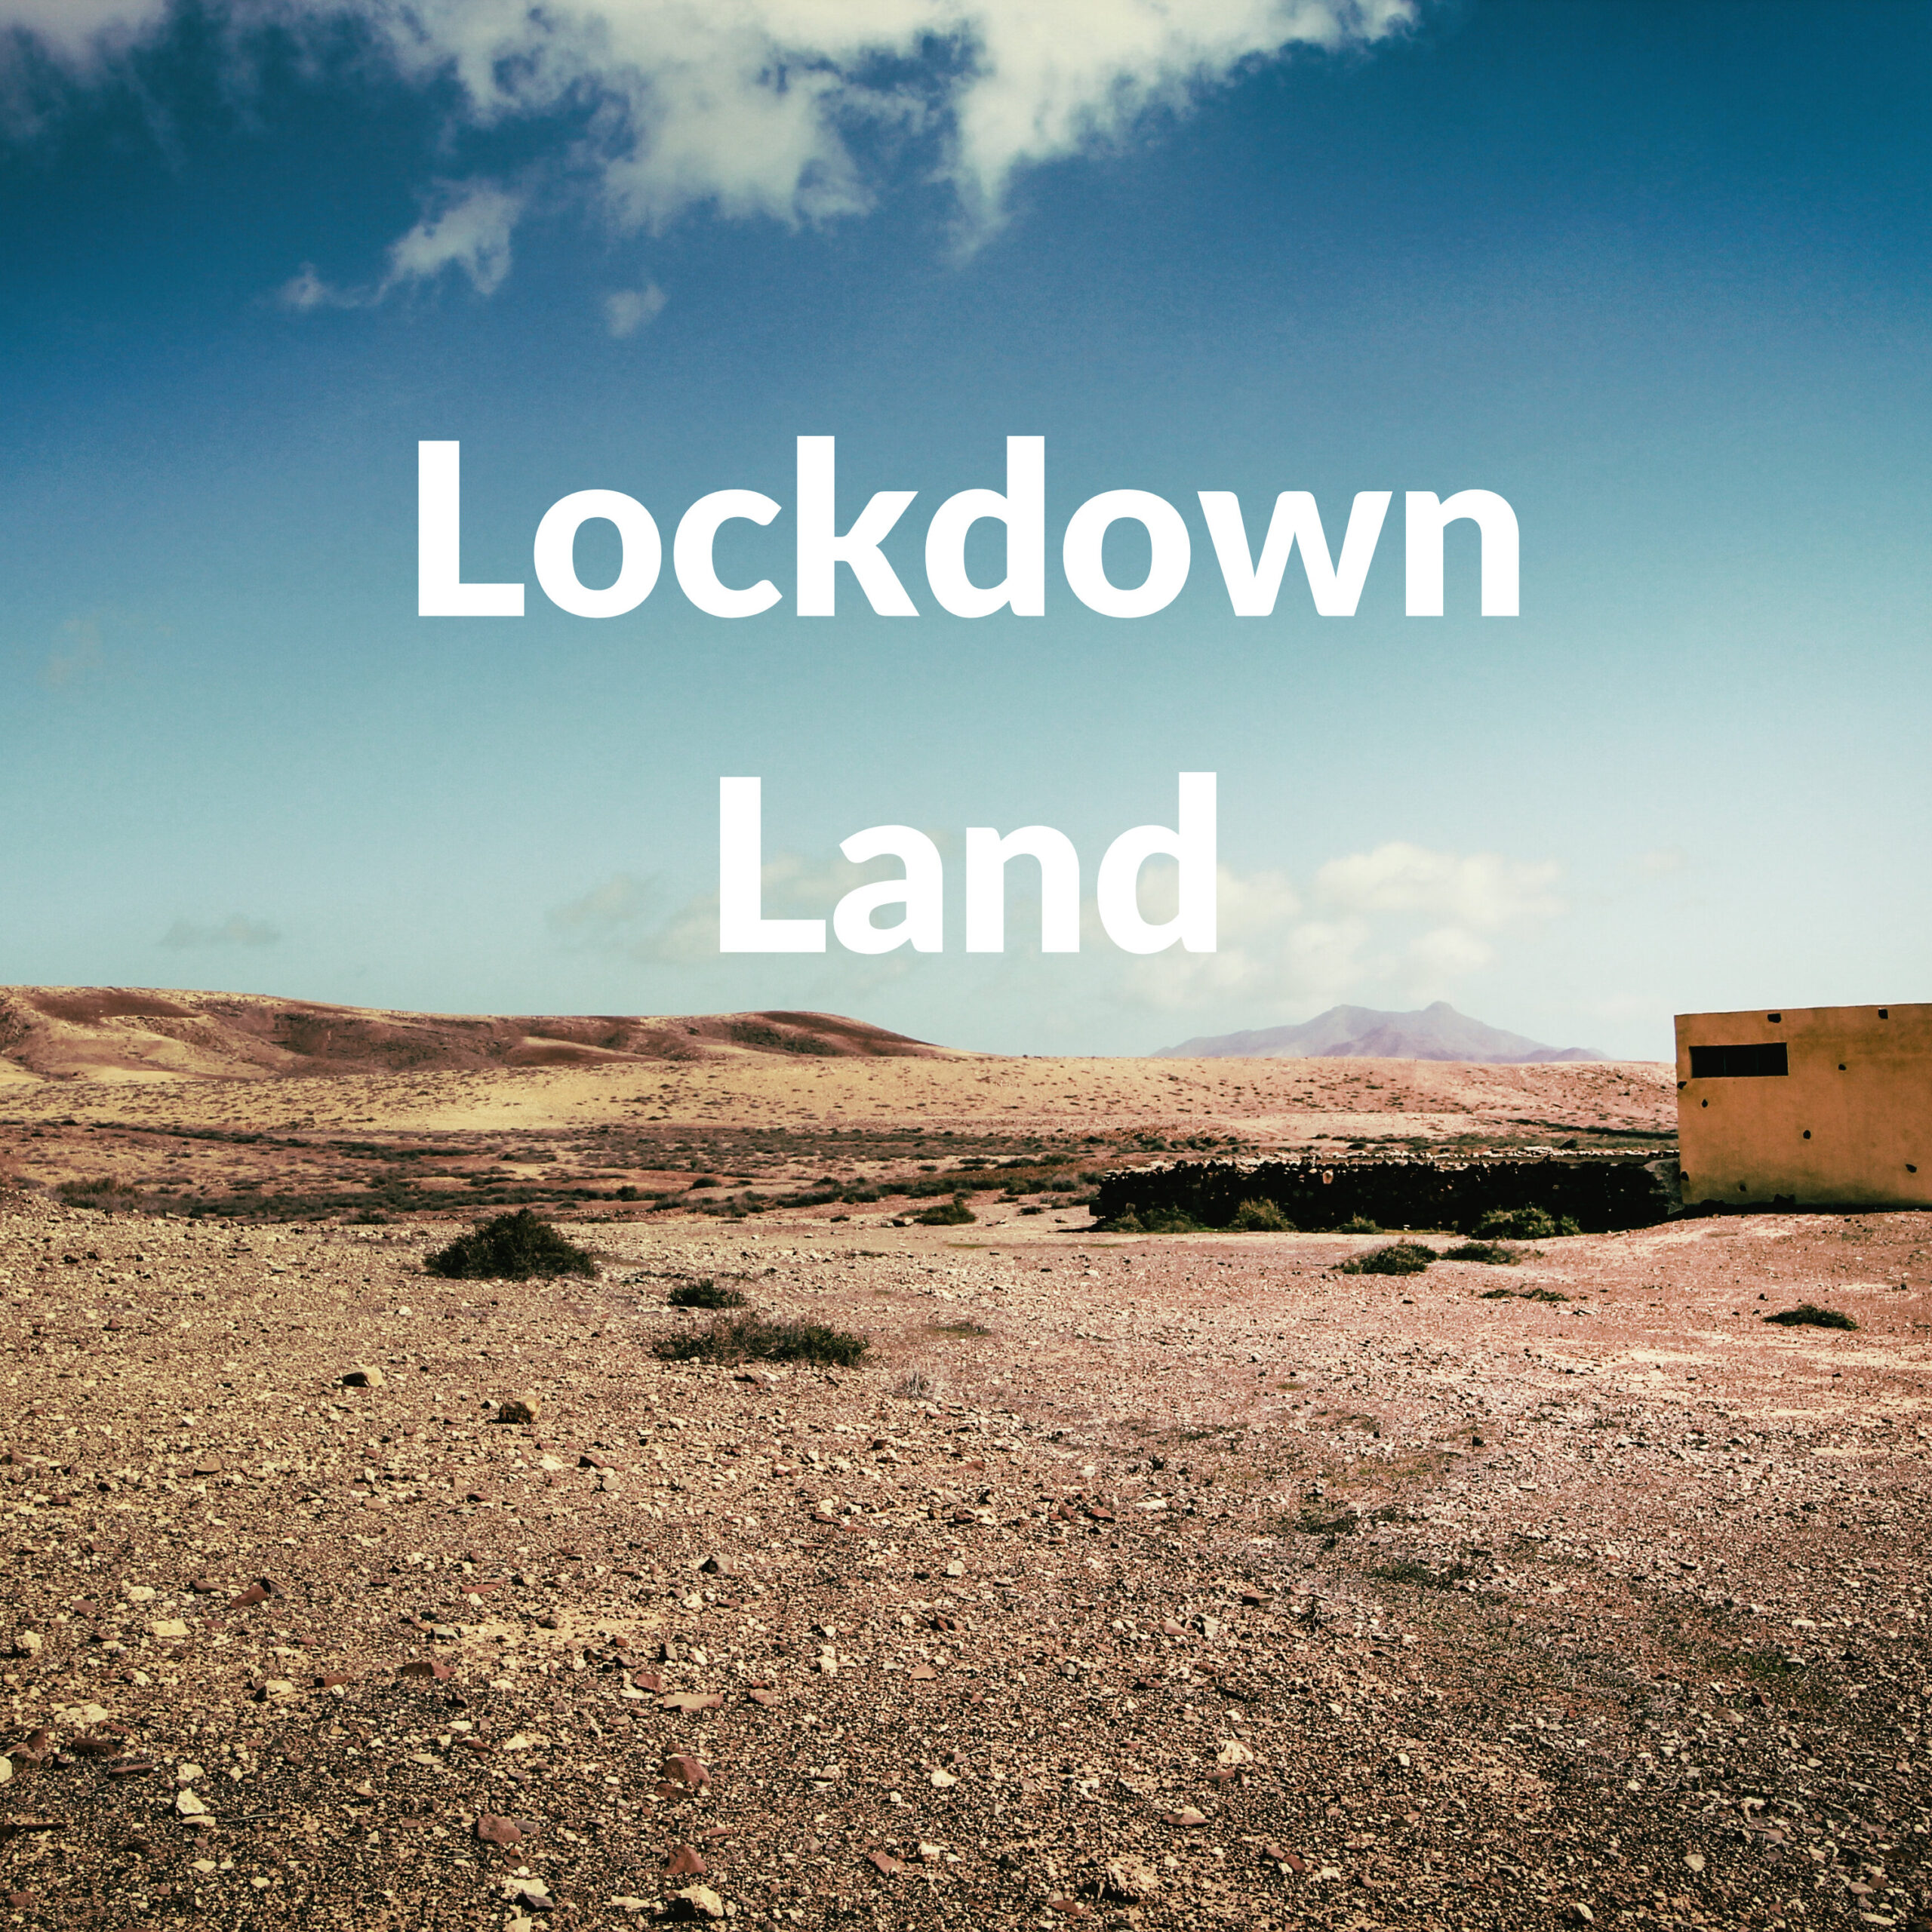 Lockdown Land